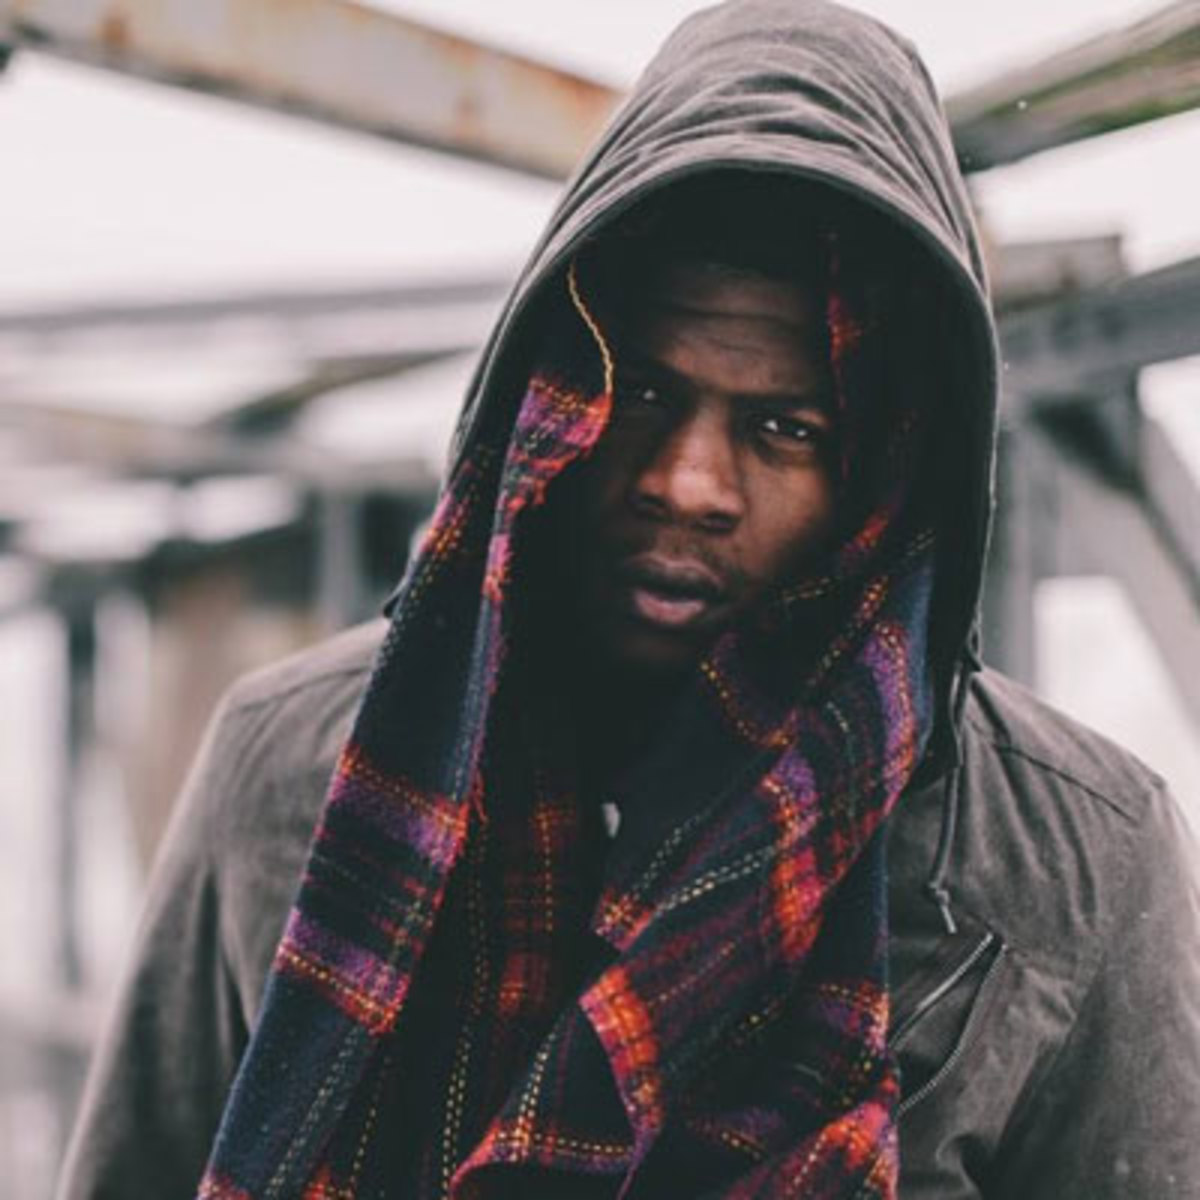 mick-jenkins-competition.jpg